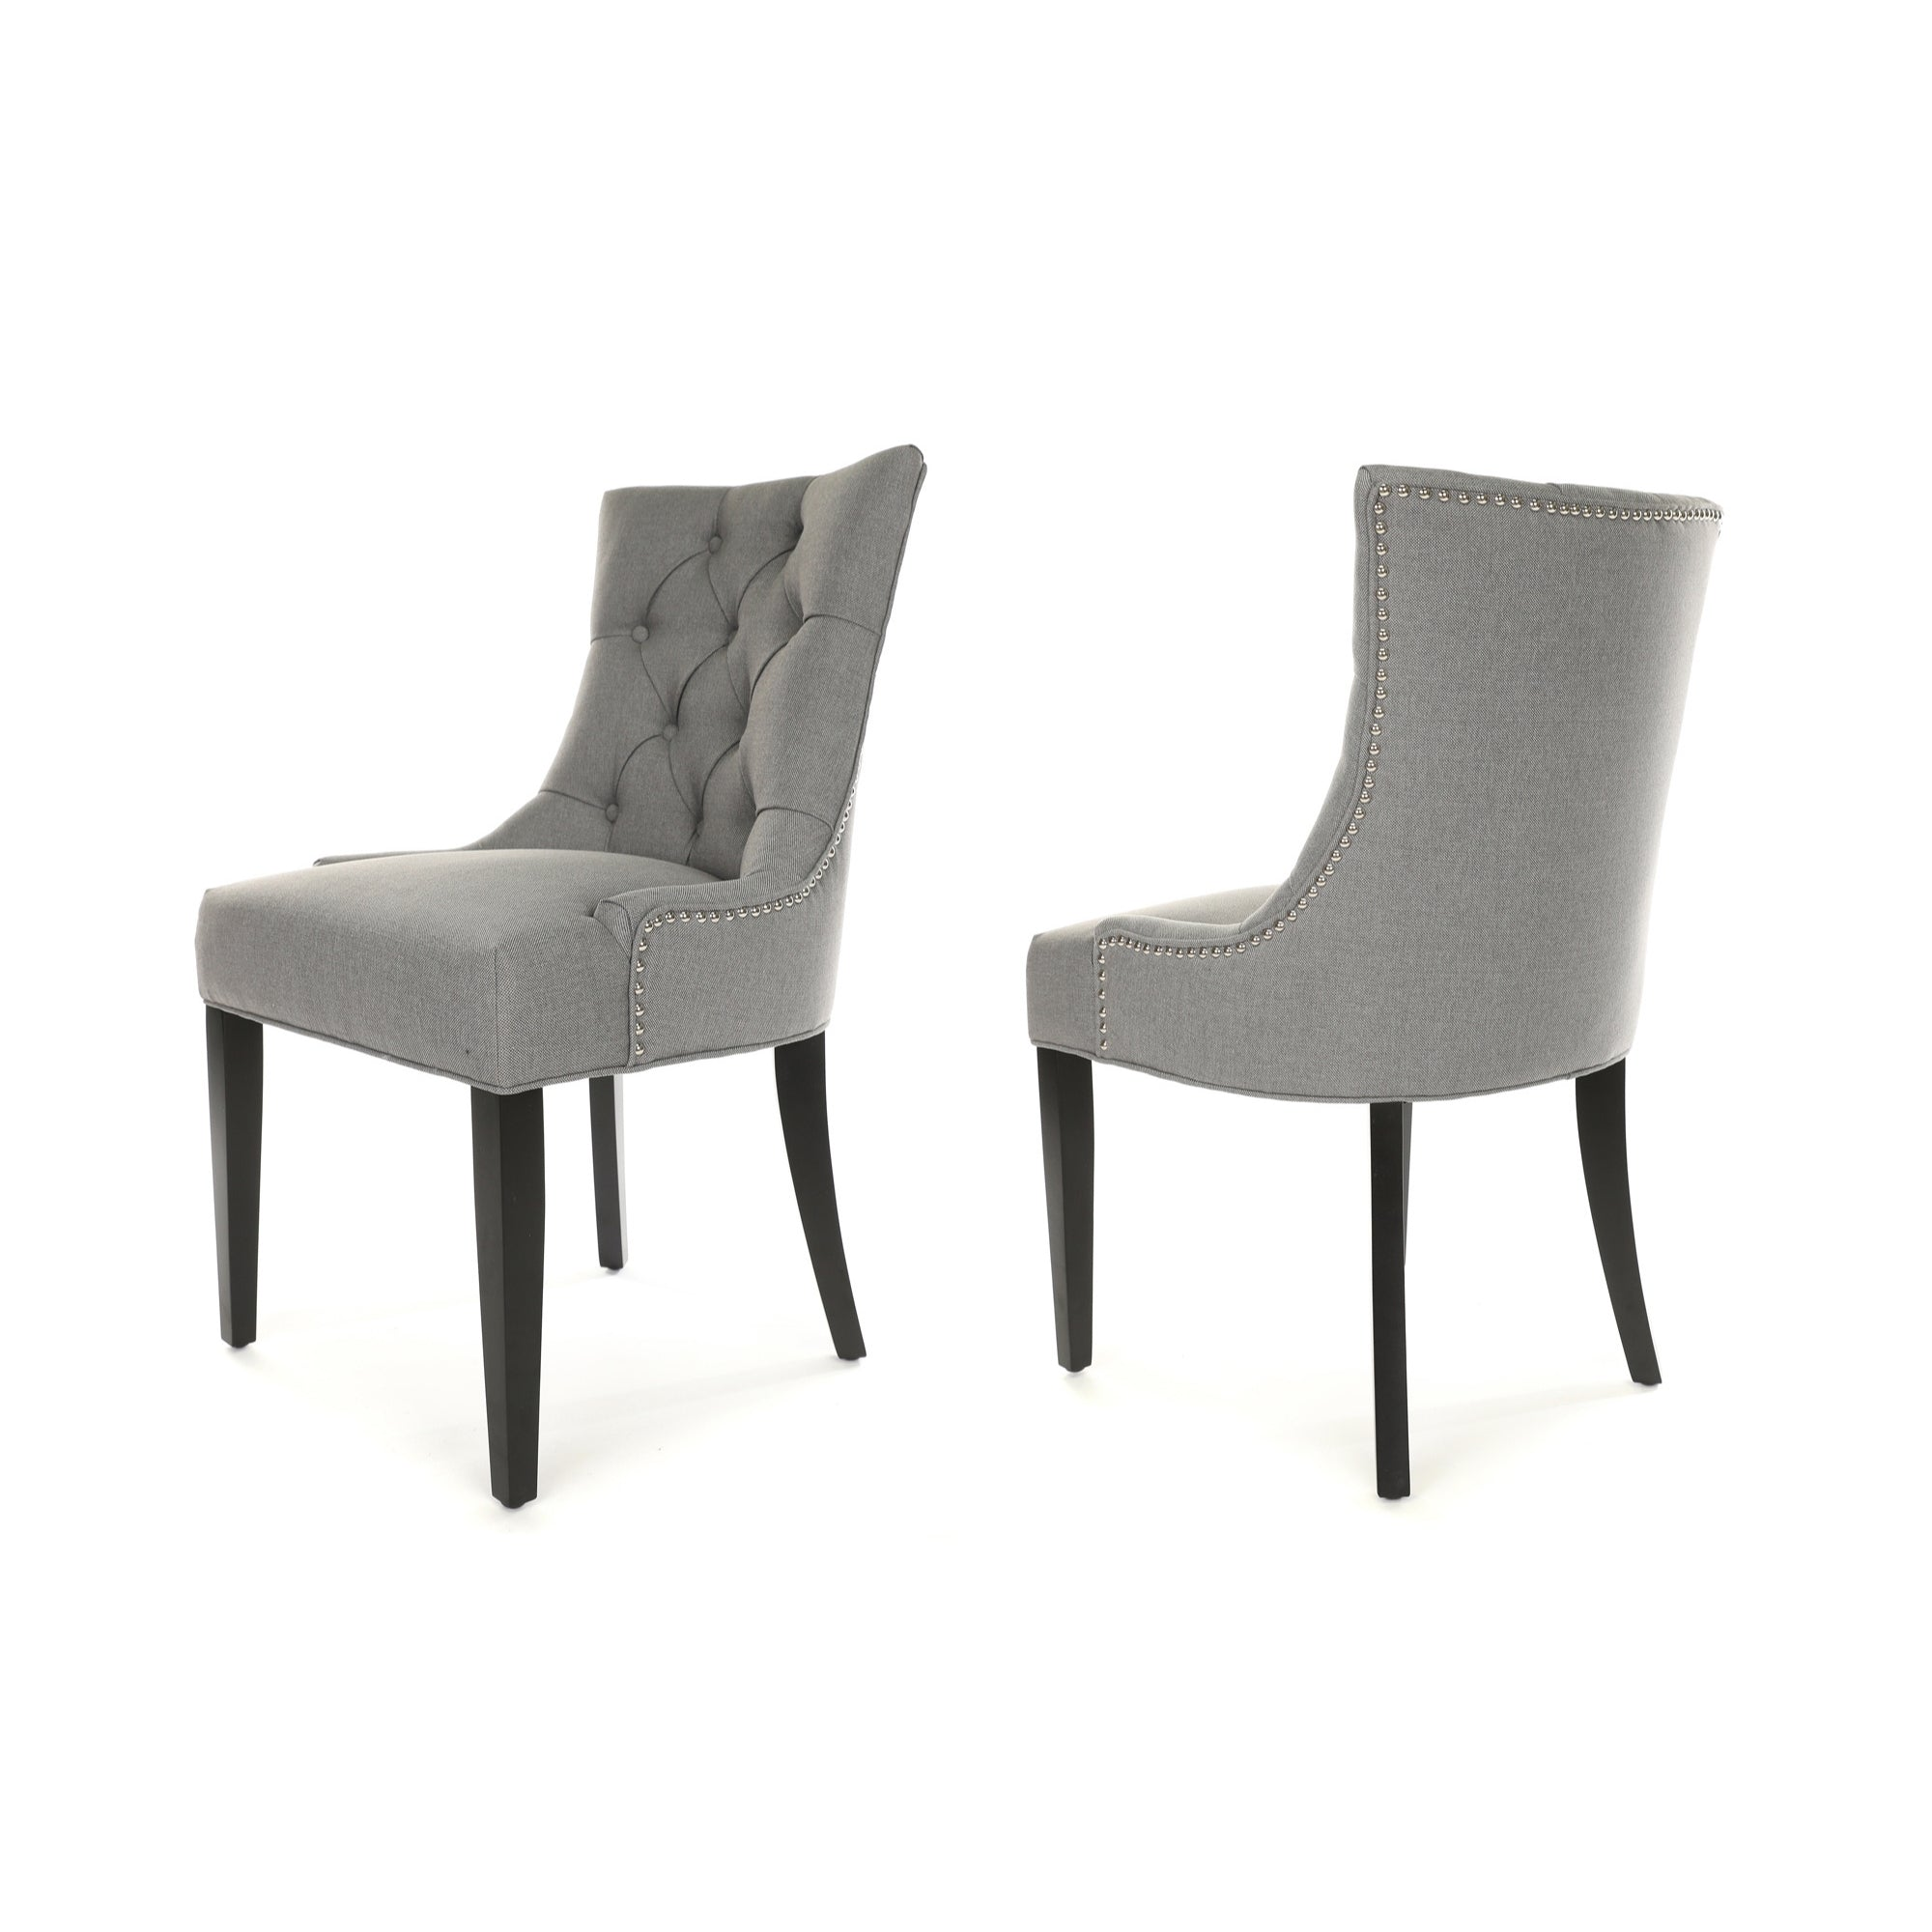 Porter Dining Chair, Grey fabric, Black wood legs and stud detail